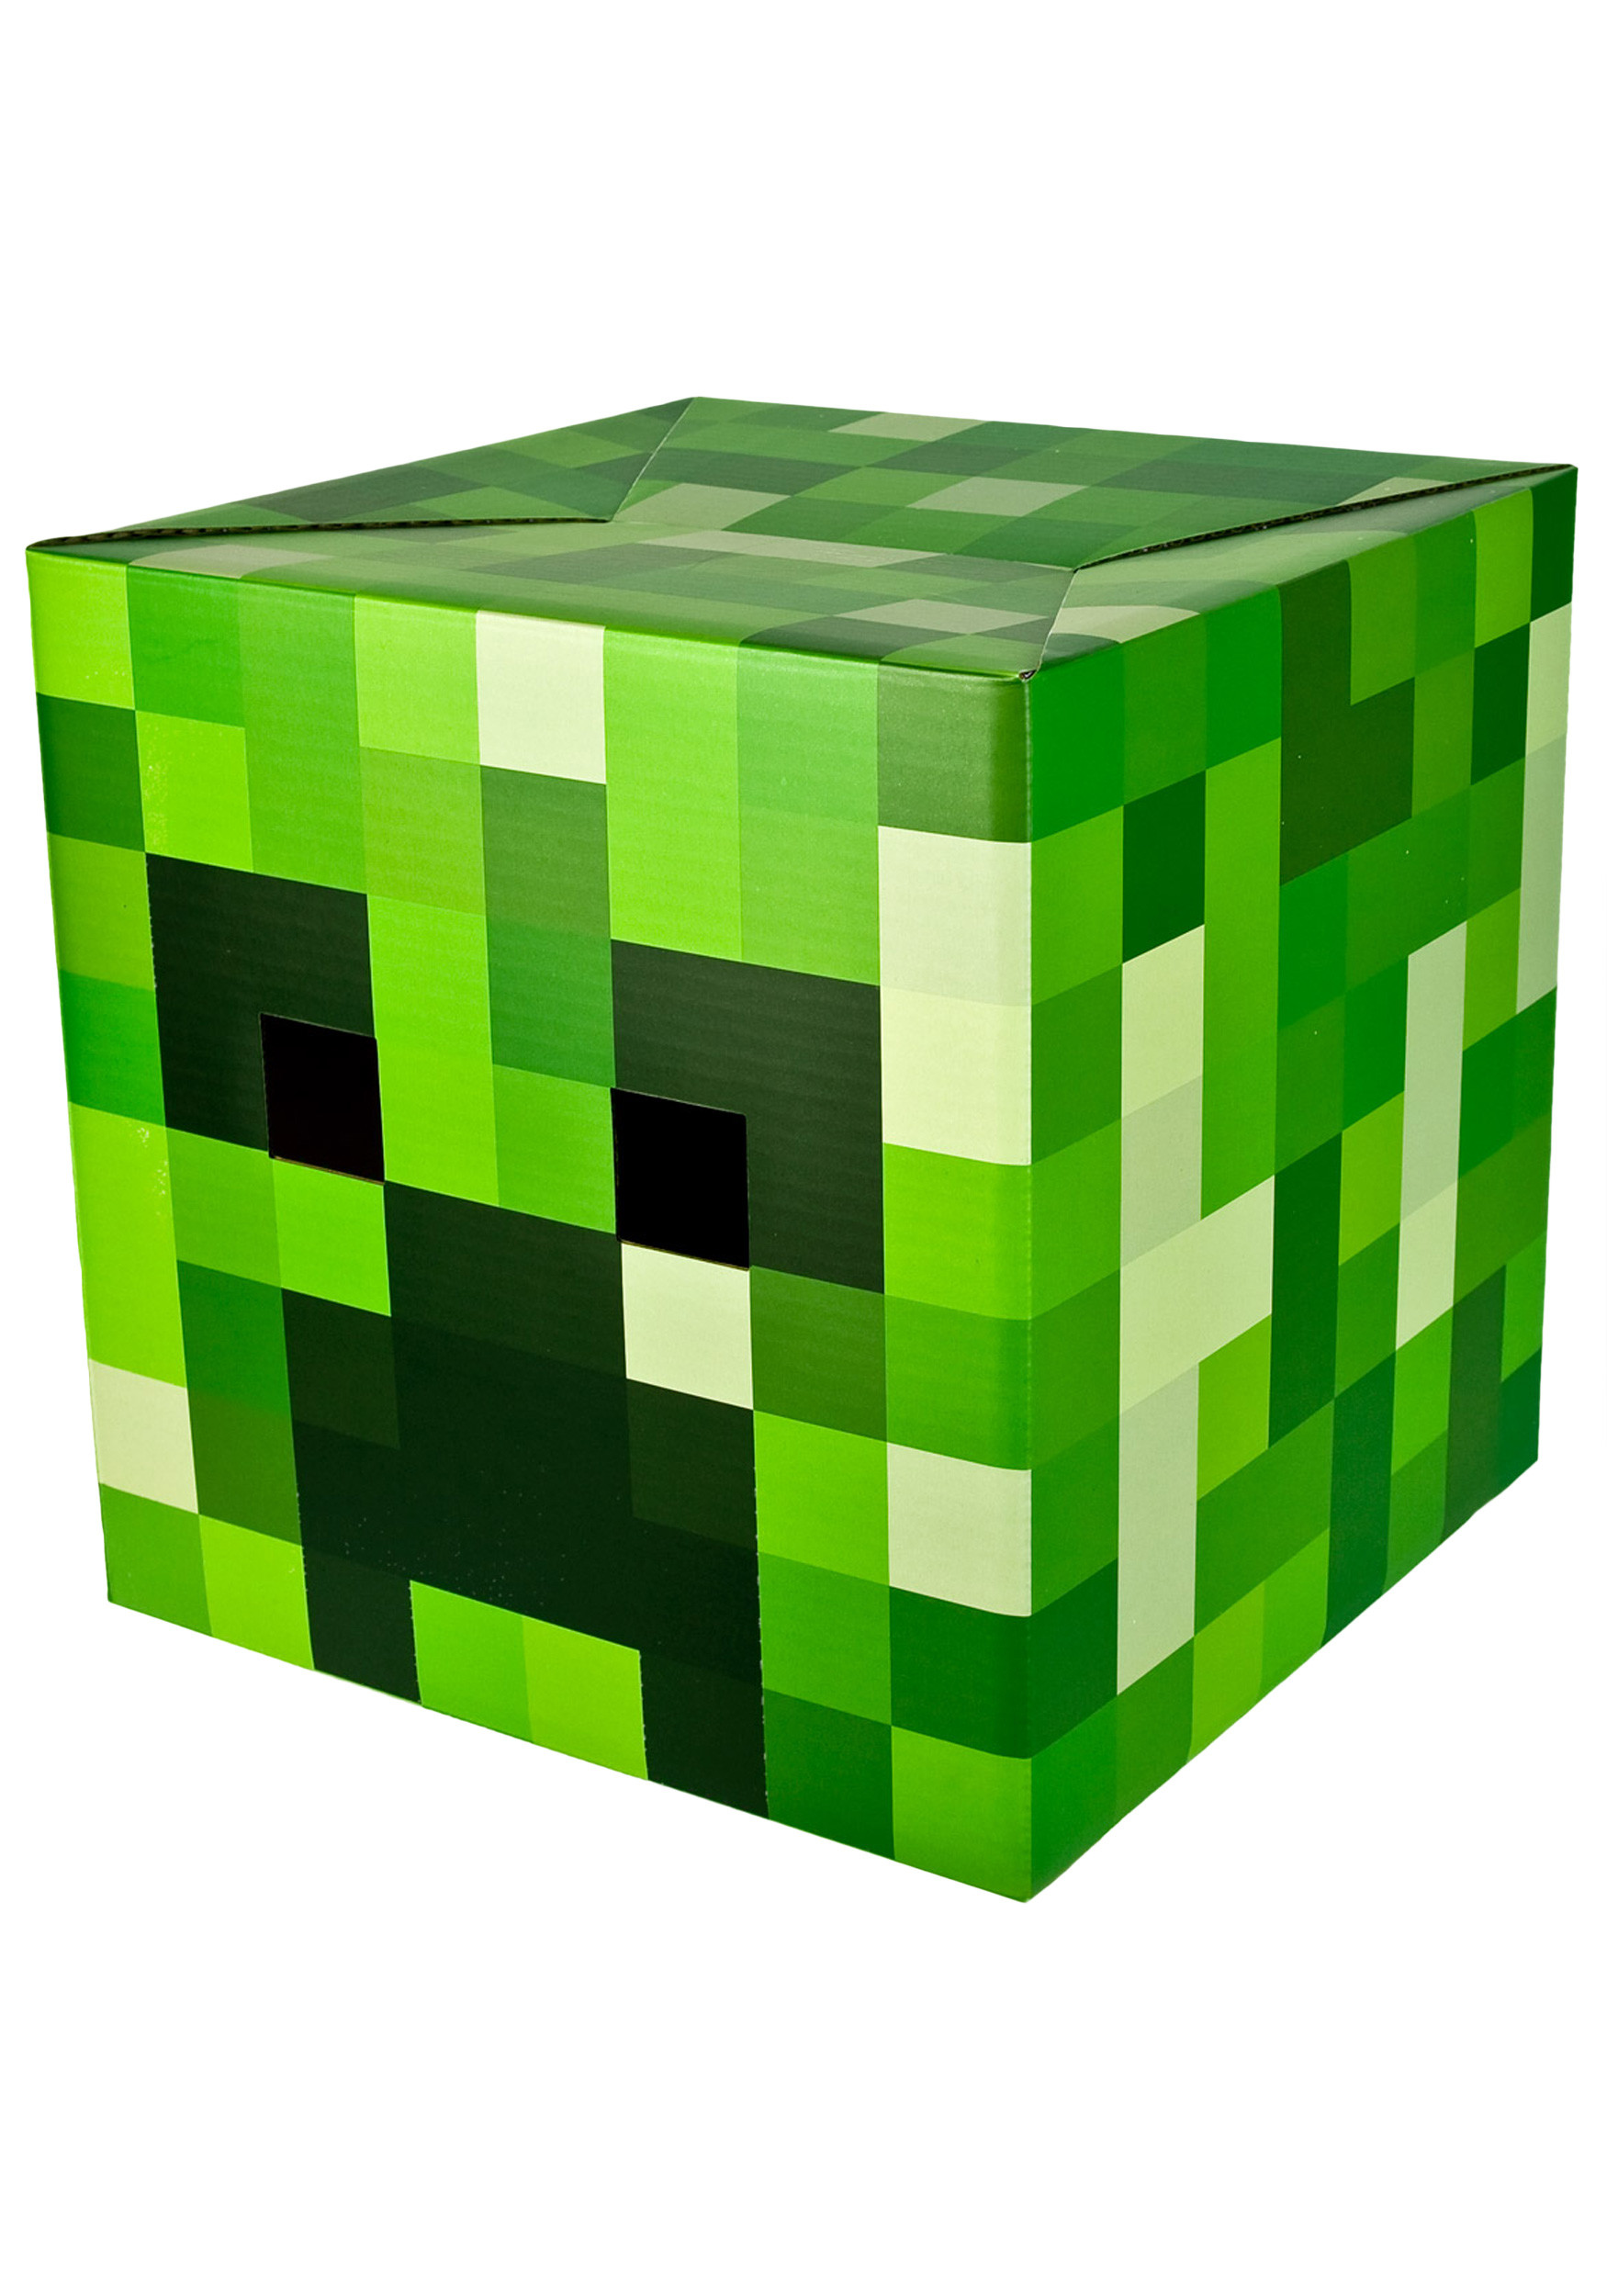 1750x2500 The Minecraft creeper images Creeper HD wallpaper and background photos